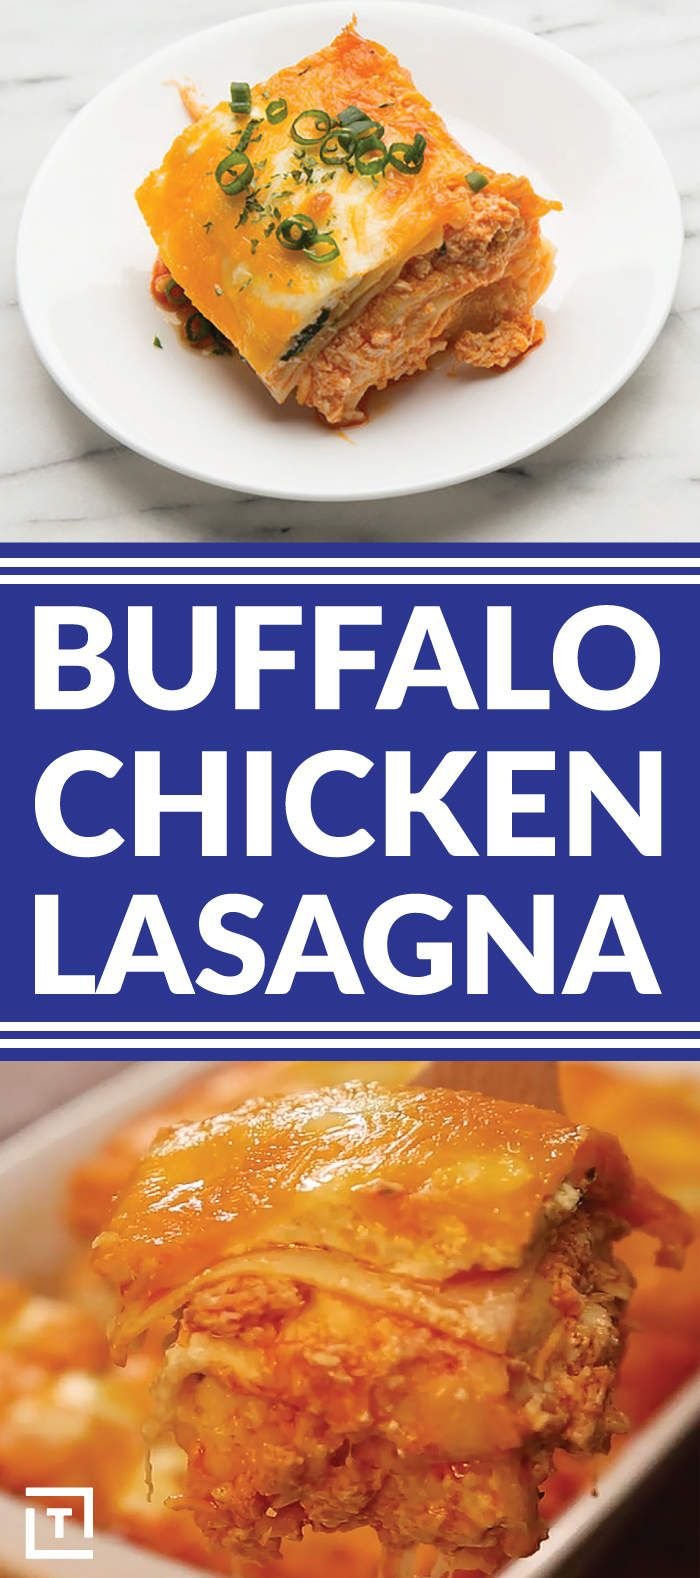 This Buffalo Chicken Lasagna Recipe will change your life.